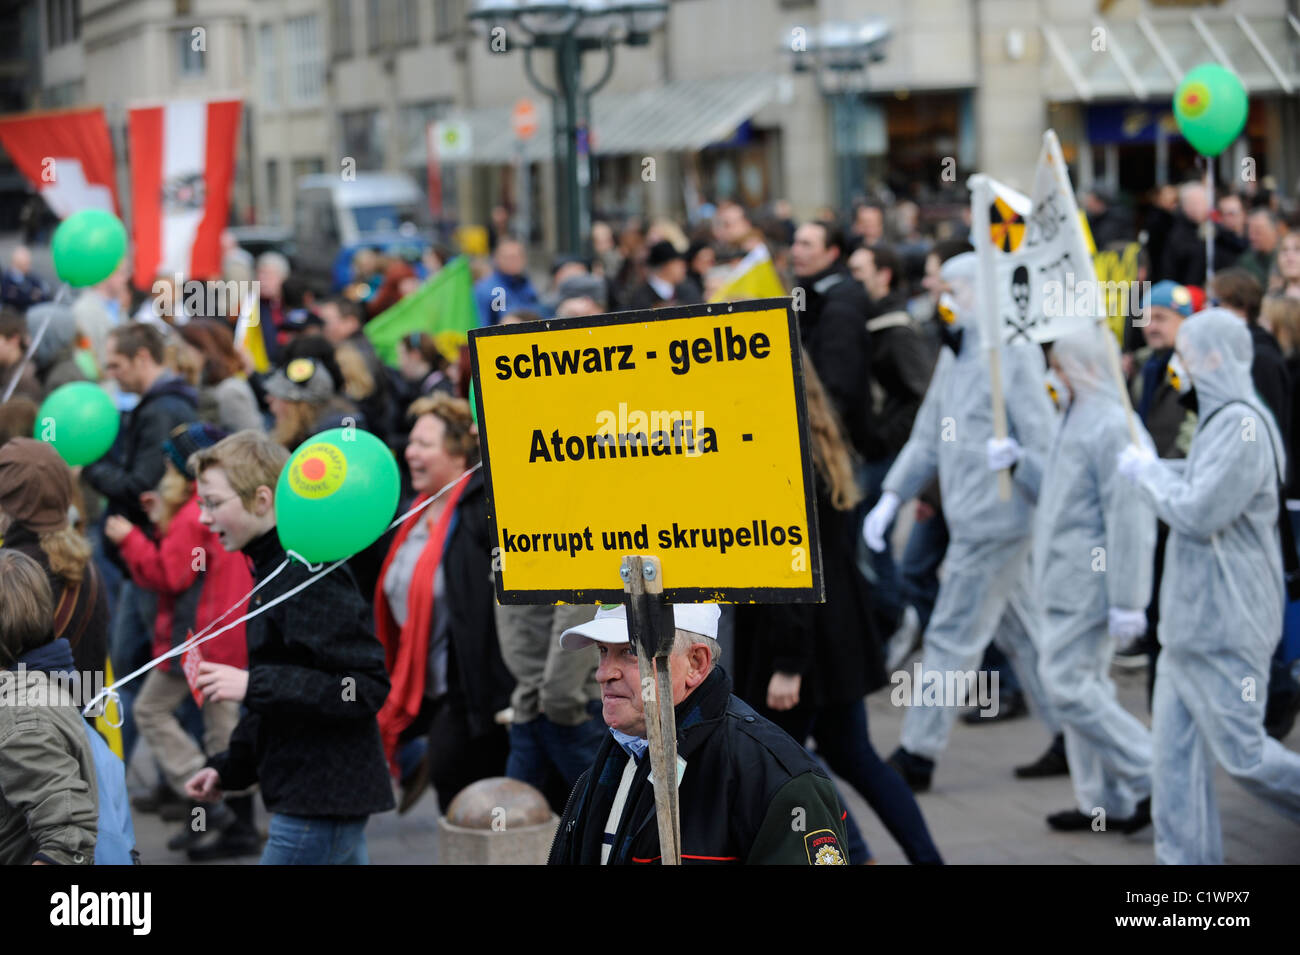 GERMANY Hamburg 2011 march 26 , large rally and public meeting at townhall market against nuclear power after accident - Stock Image